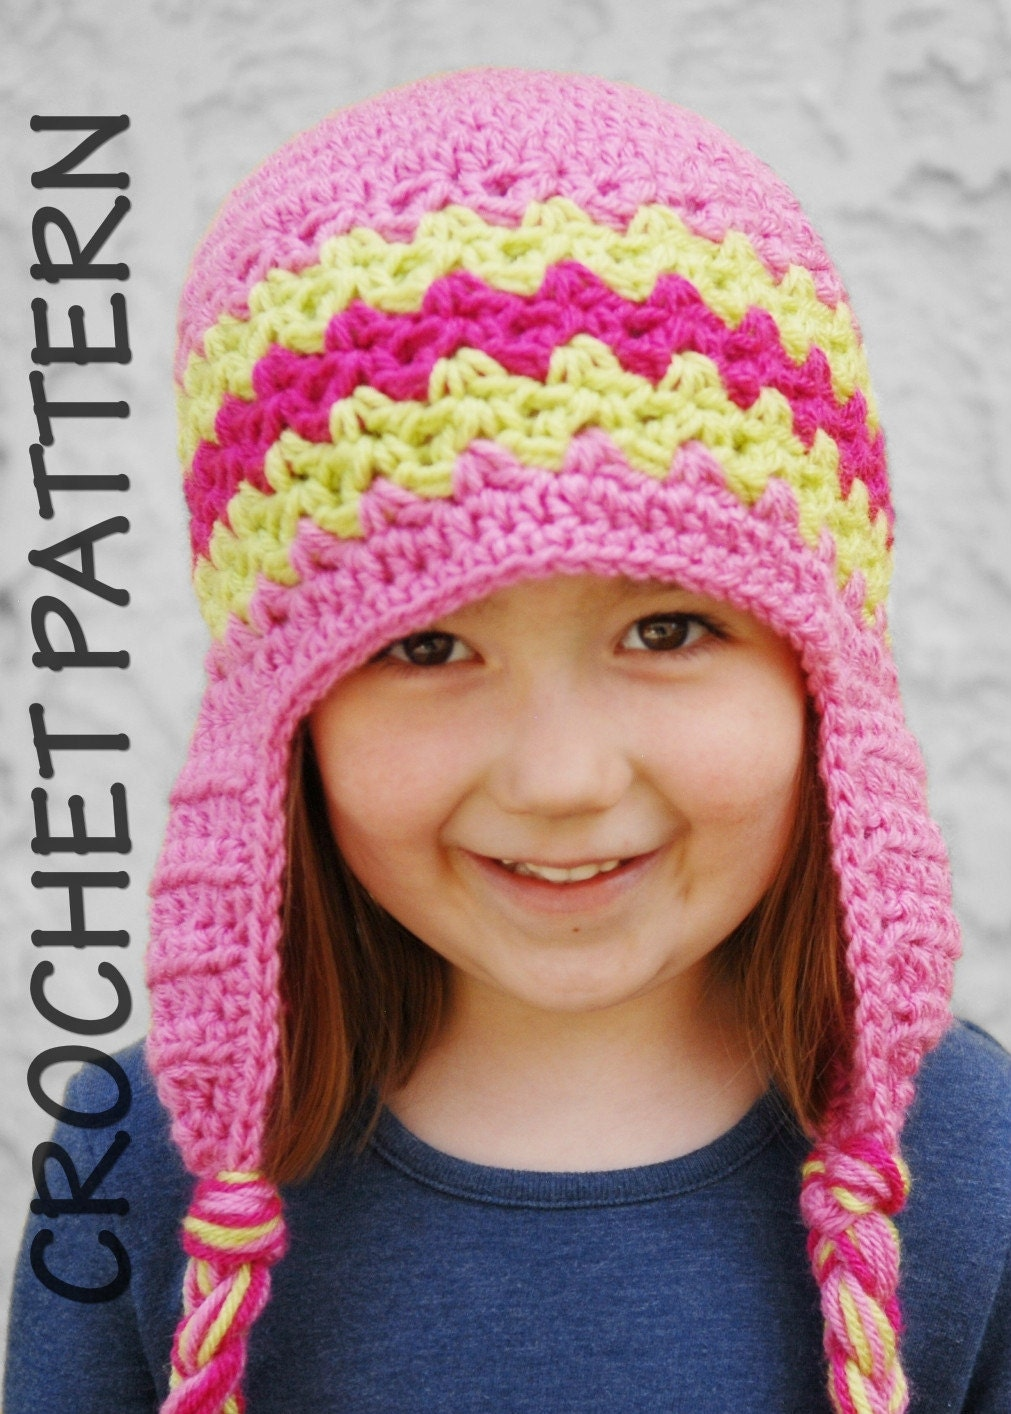 Crochet Patterns Hats For Toddlers : CROCHET PATTERNS KIDS HATS ? Crochet For Beginners